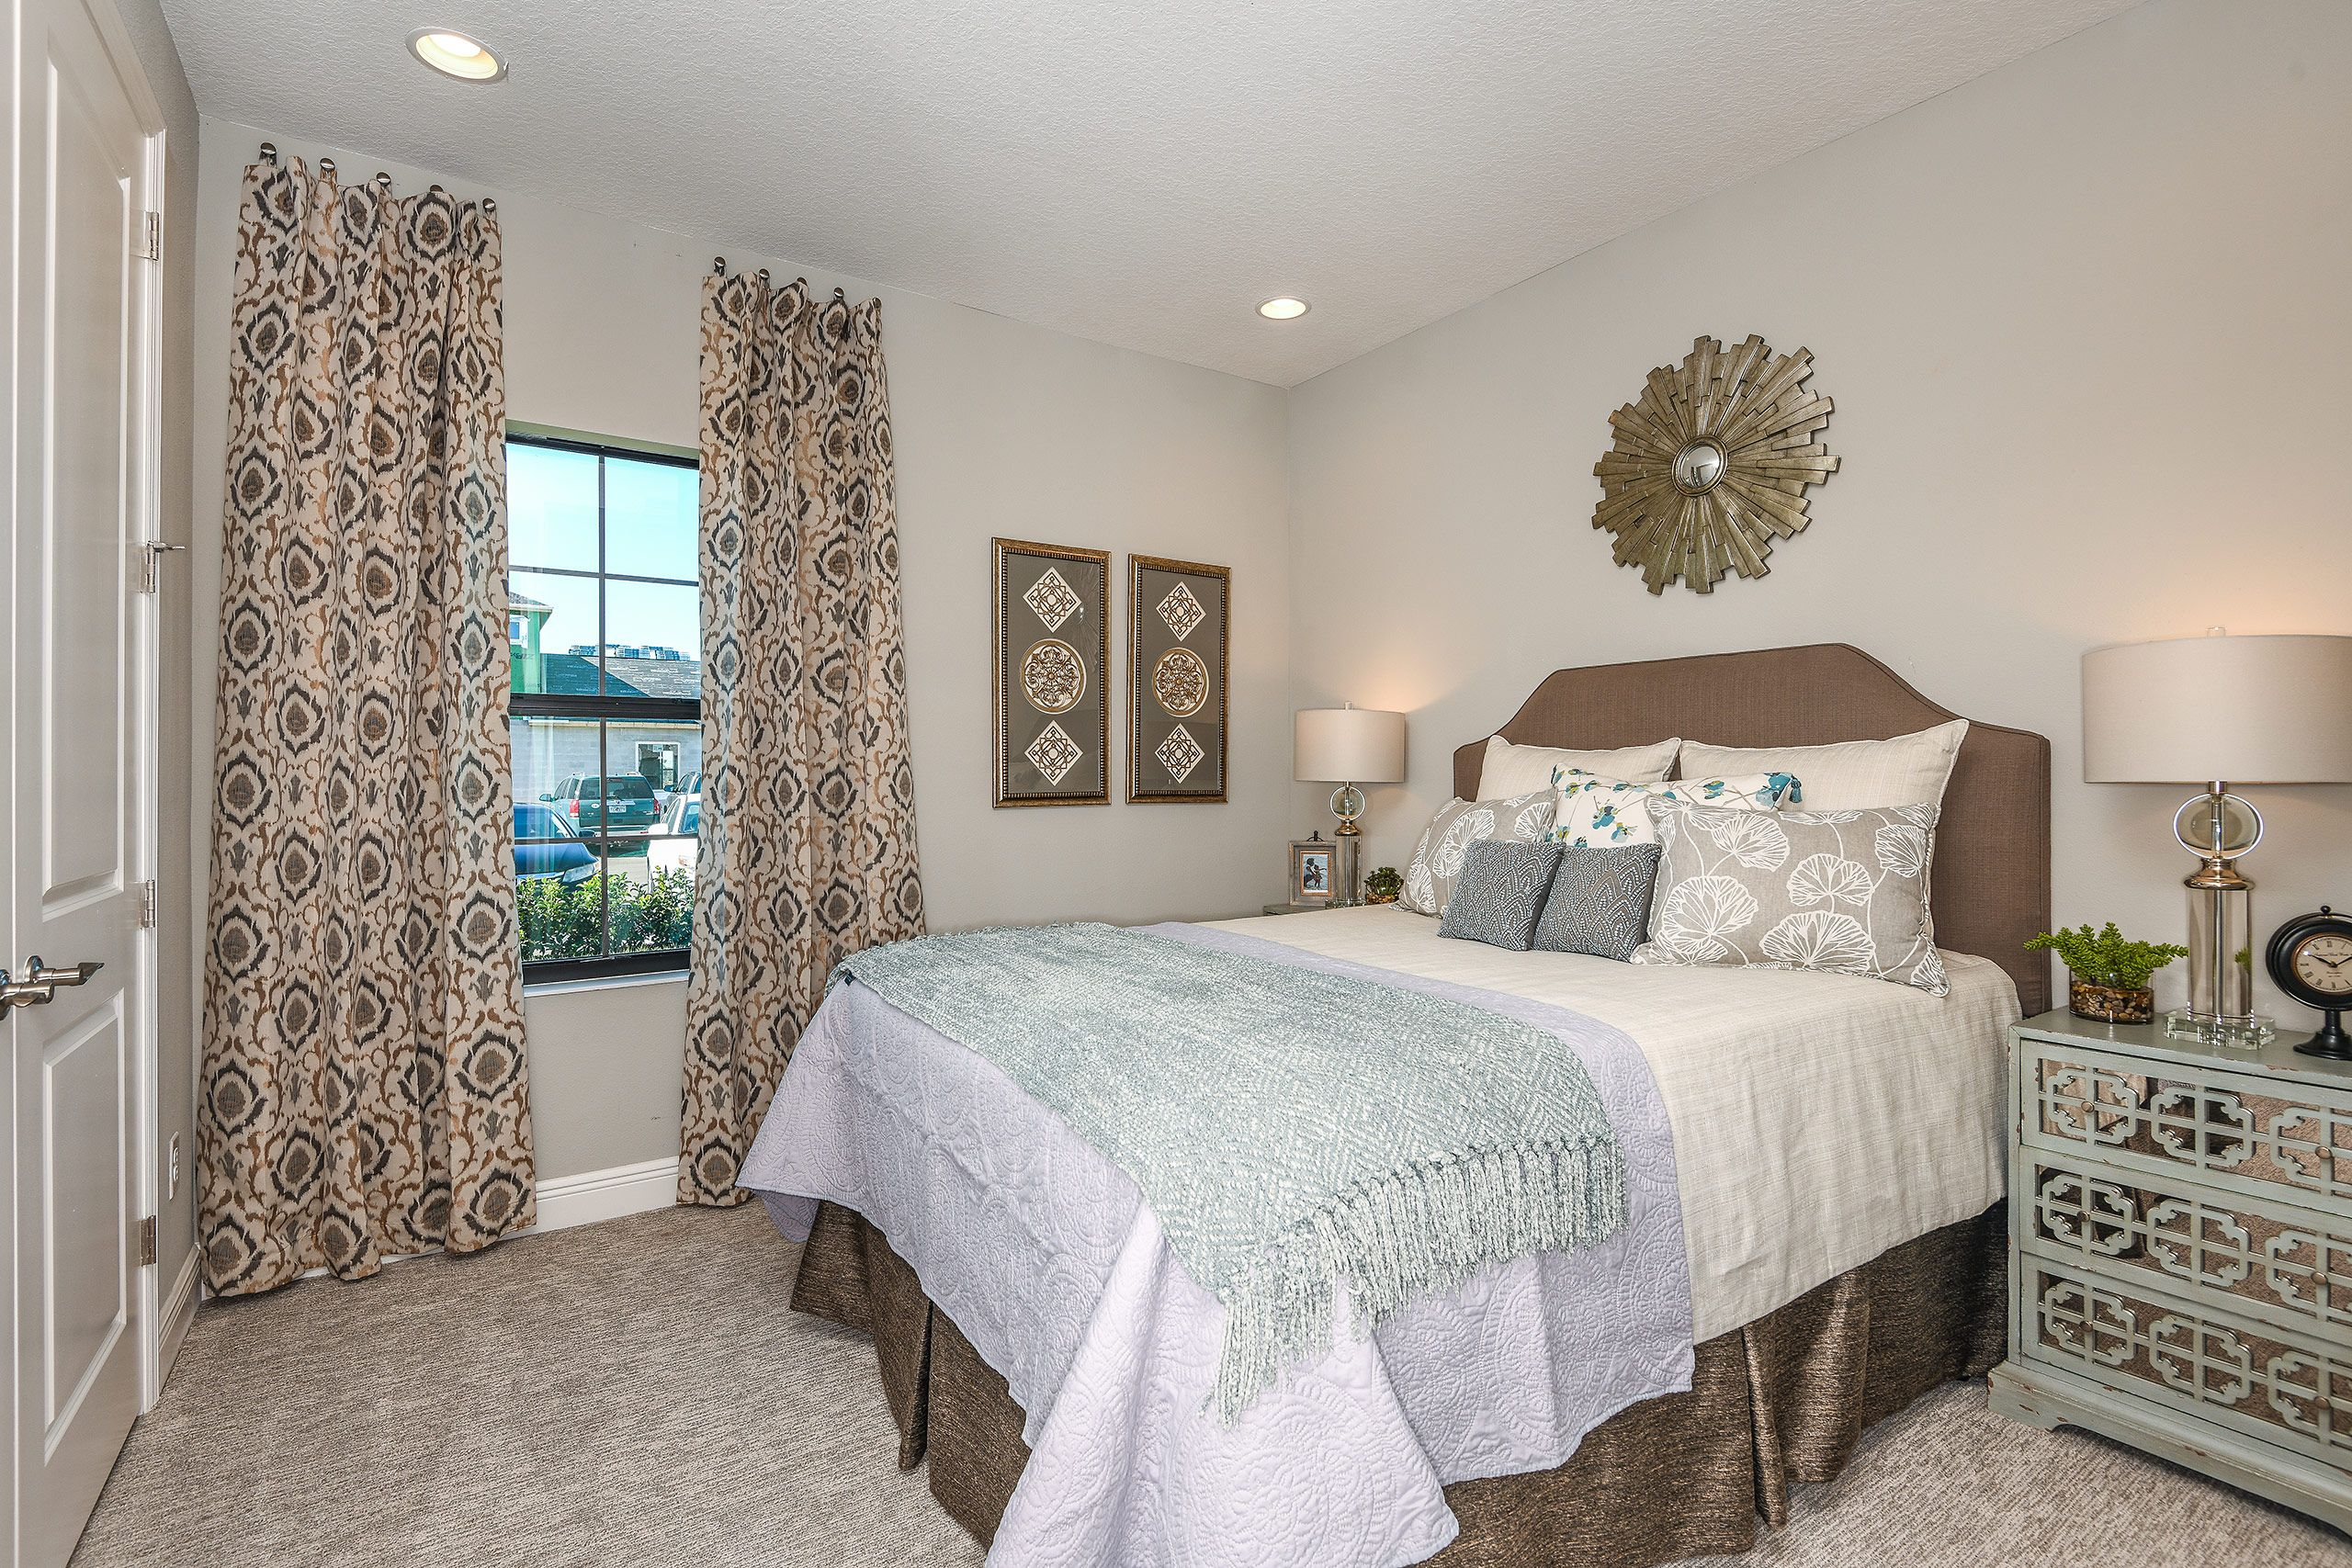 Bedroom featured in the Sandpiper By Homes by WestBay in Tampa-St. Petersburg, FL